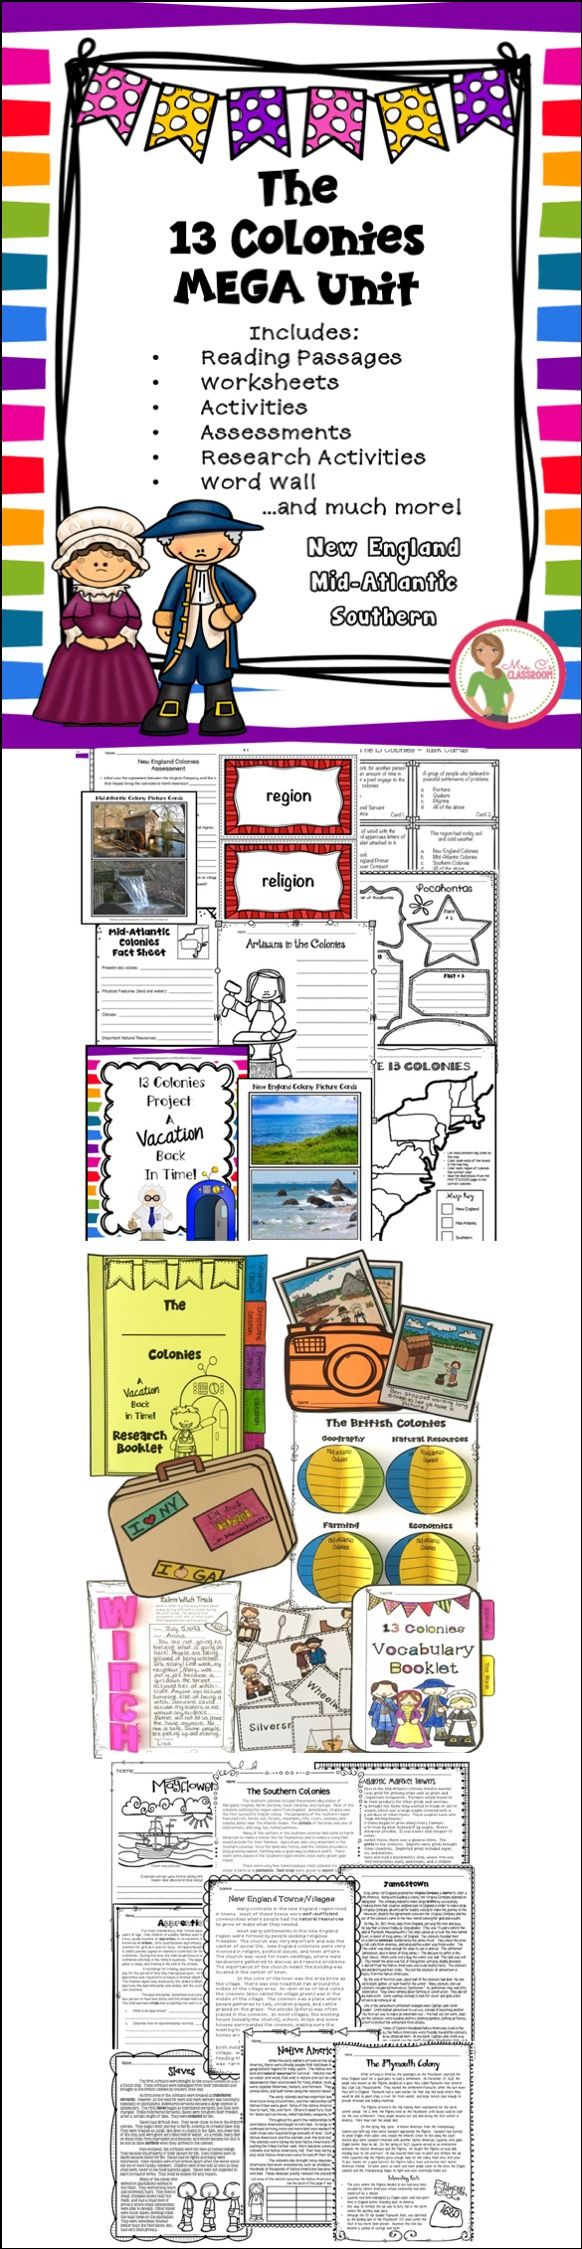 This Unit Has Everything You Could Want For Teaching A Unit On The 13 Colonies Reading Comprehension Worksheets Social Studies Notebook Teaching Social Studies [ 2249 x 582 Pixel ]